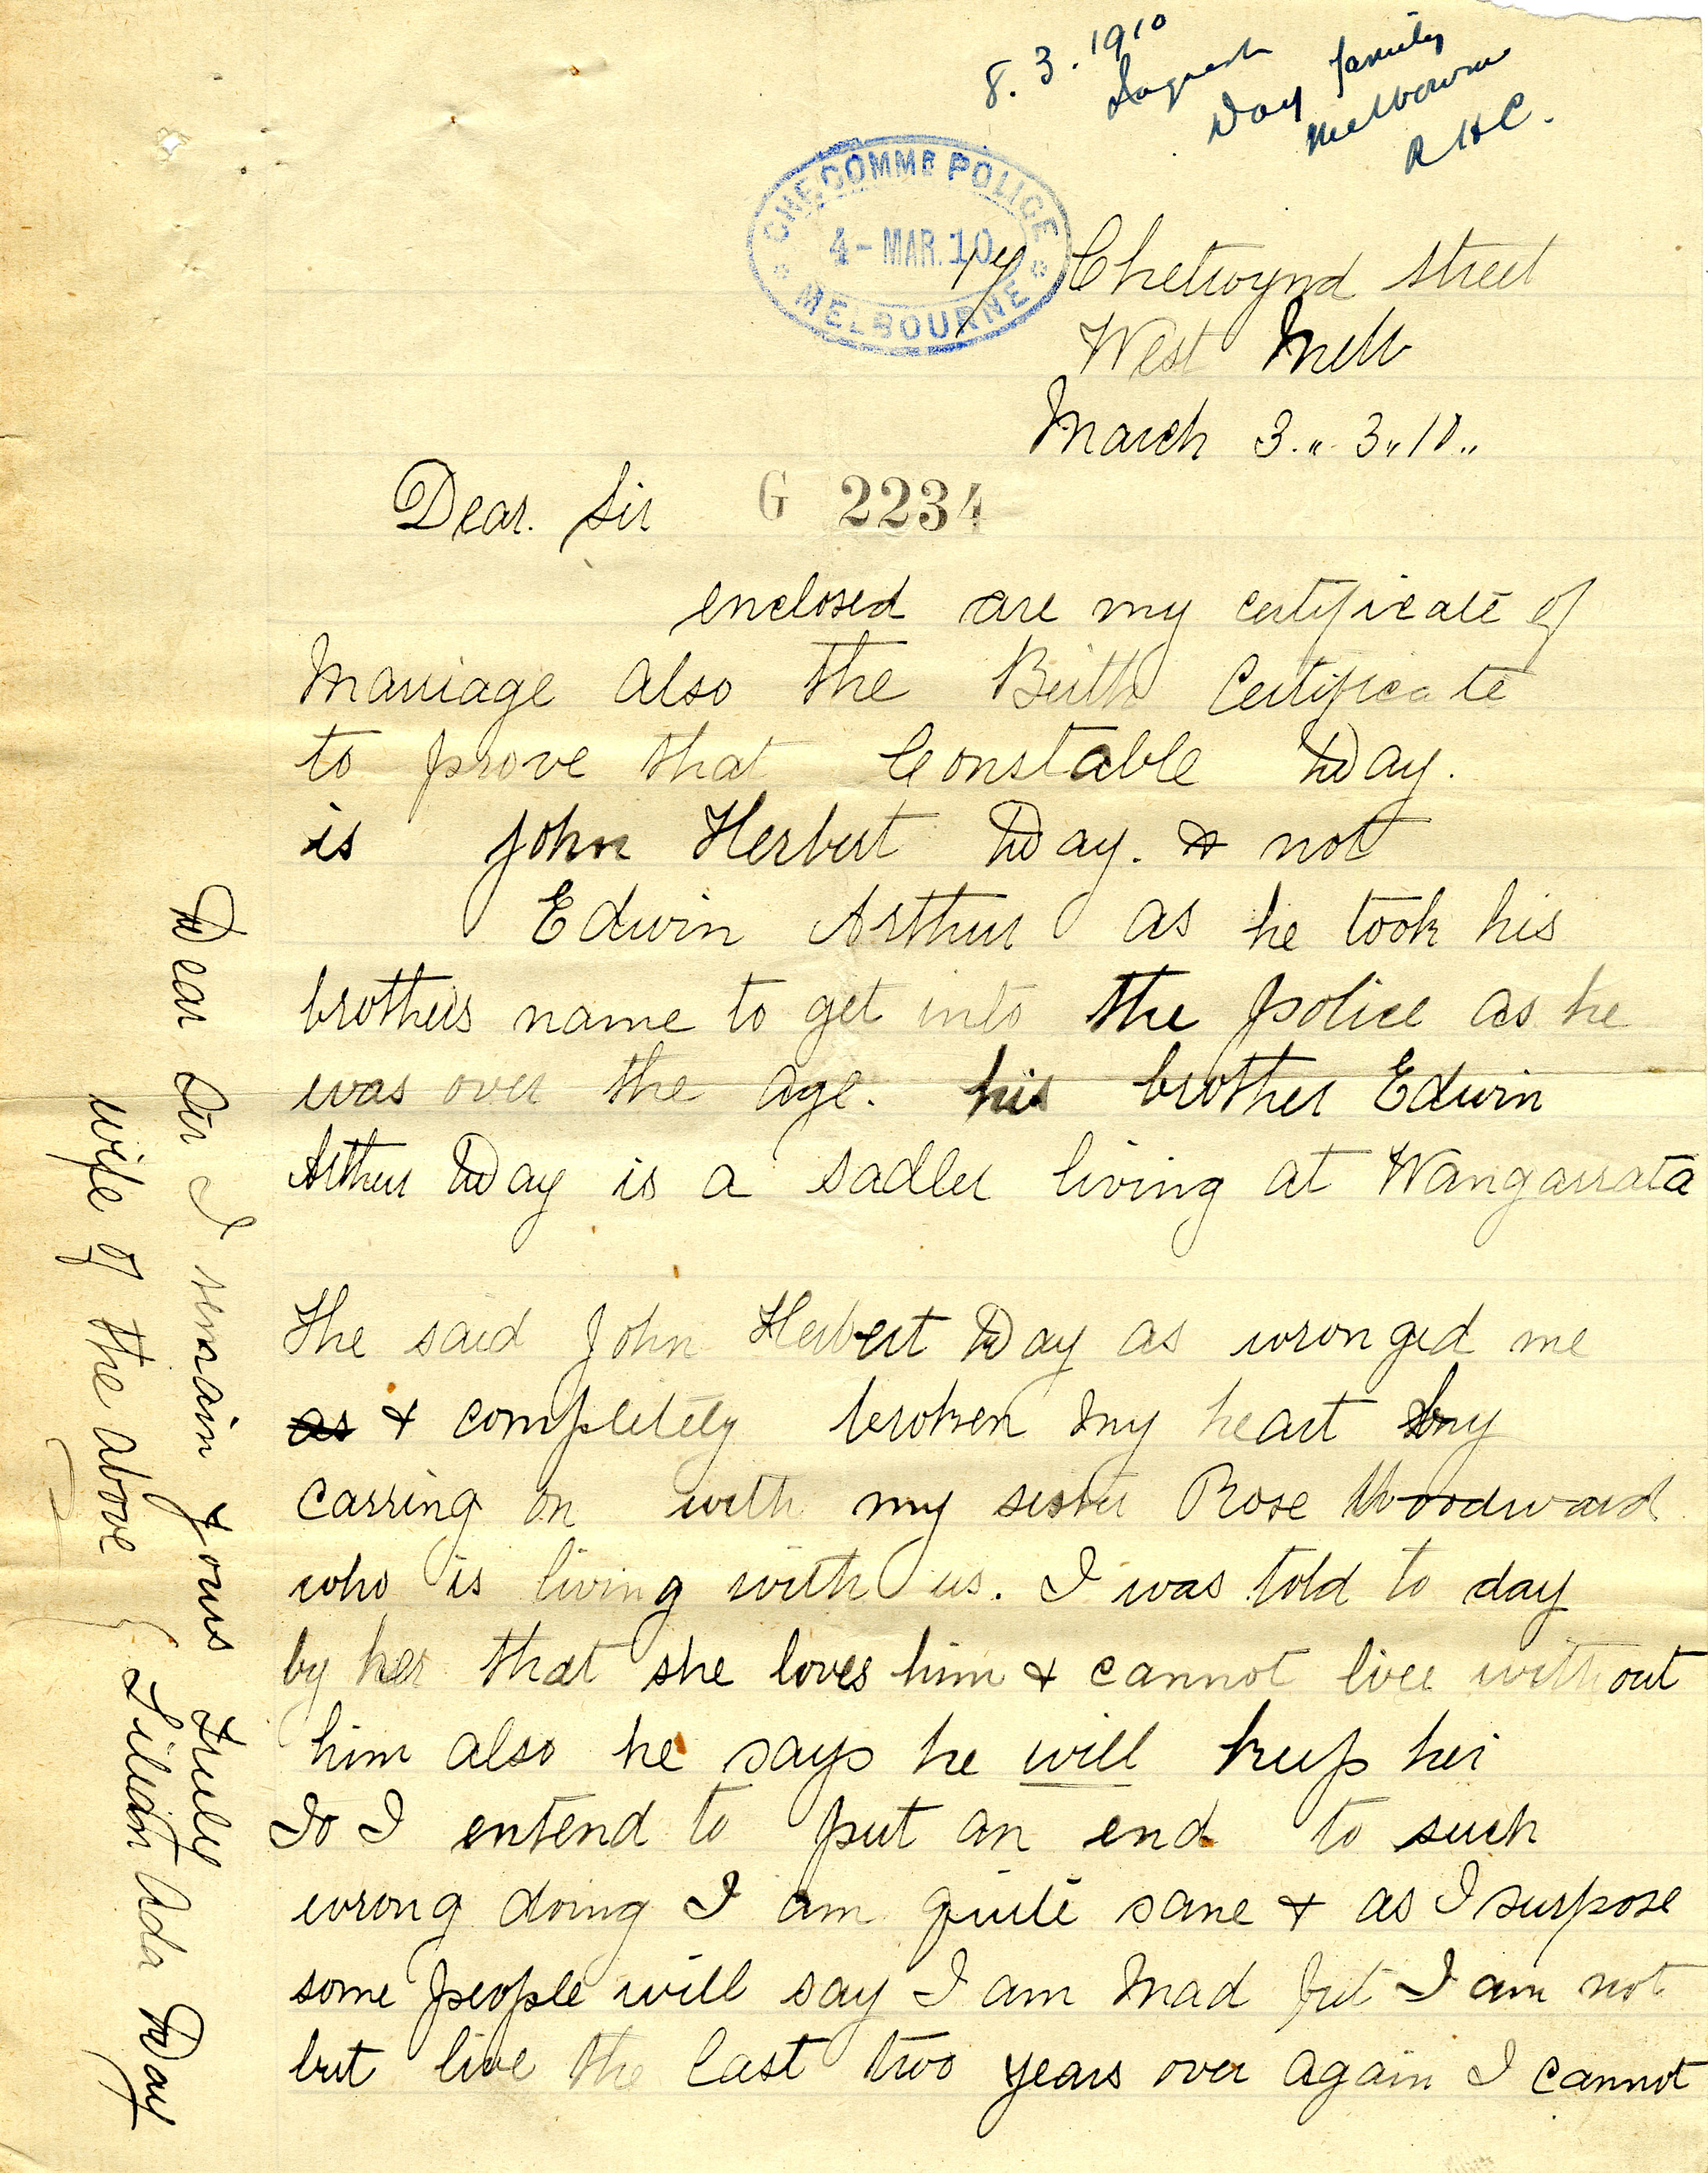 Revenge-laden letter written by Lilian Day to expose her husband's falsified entry to the Victorian police force.